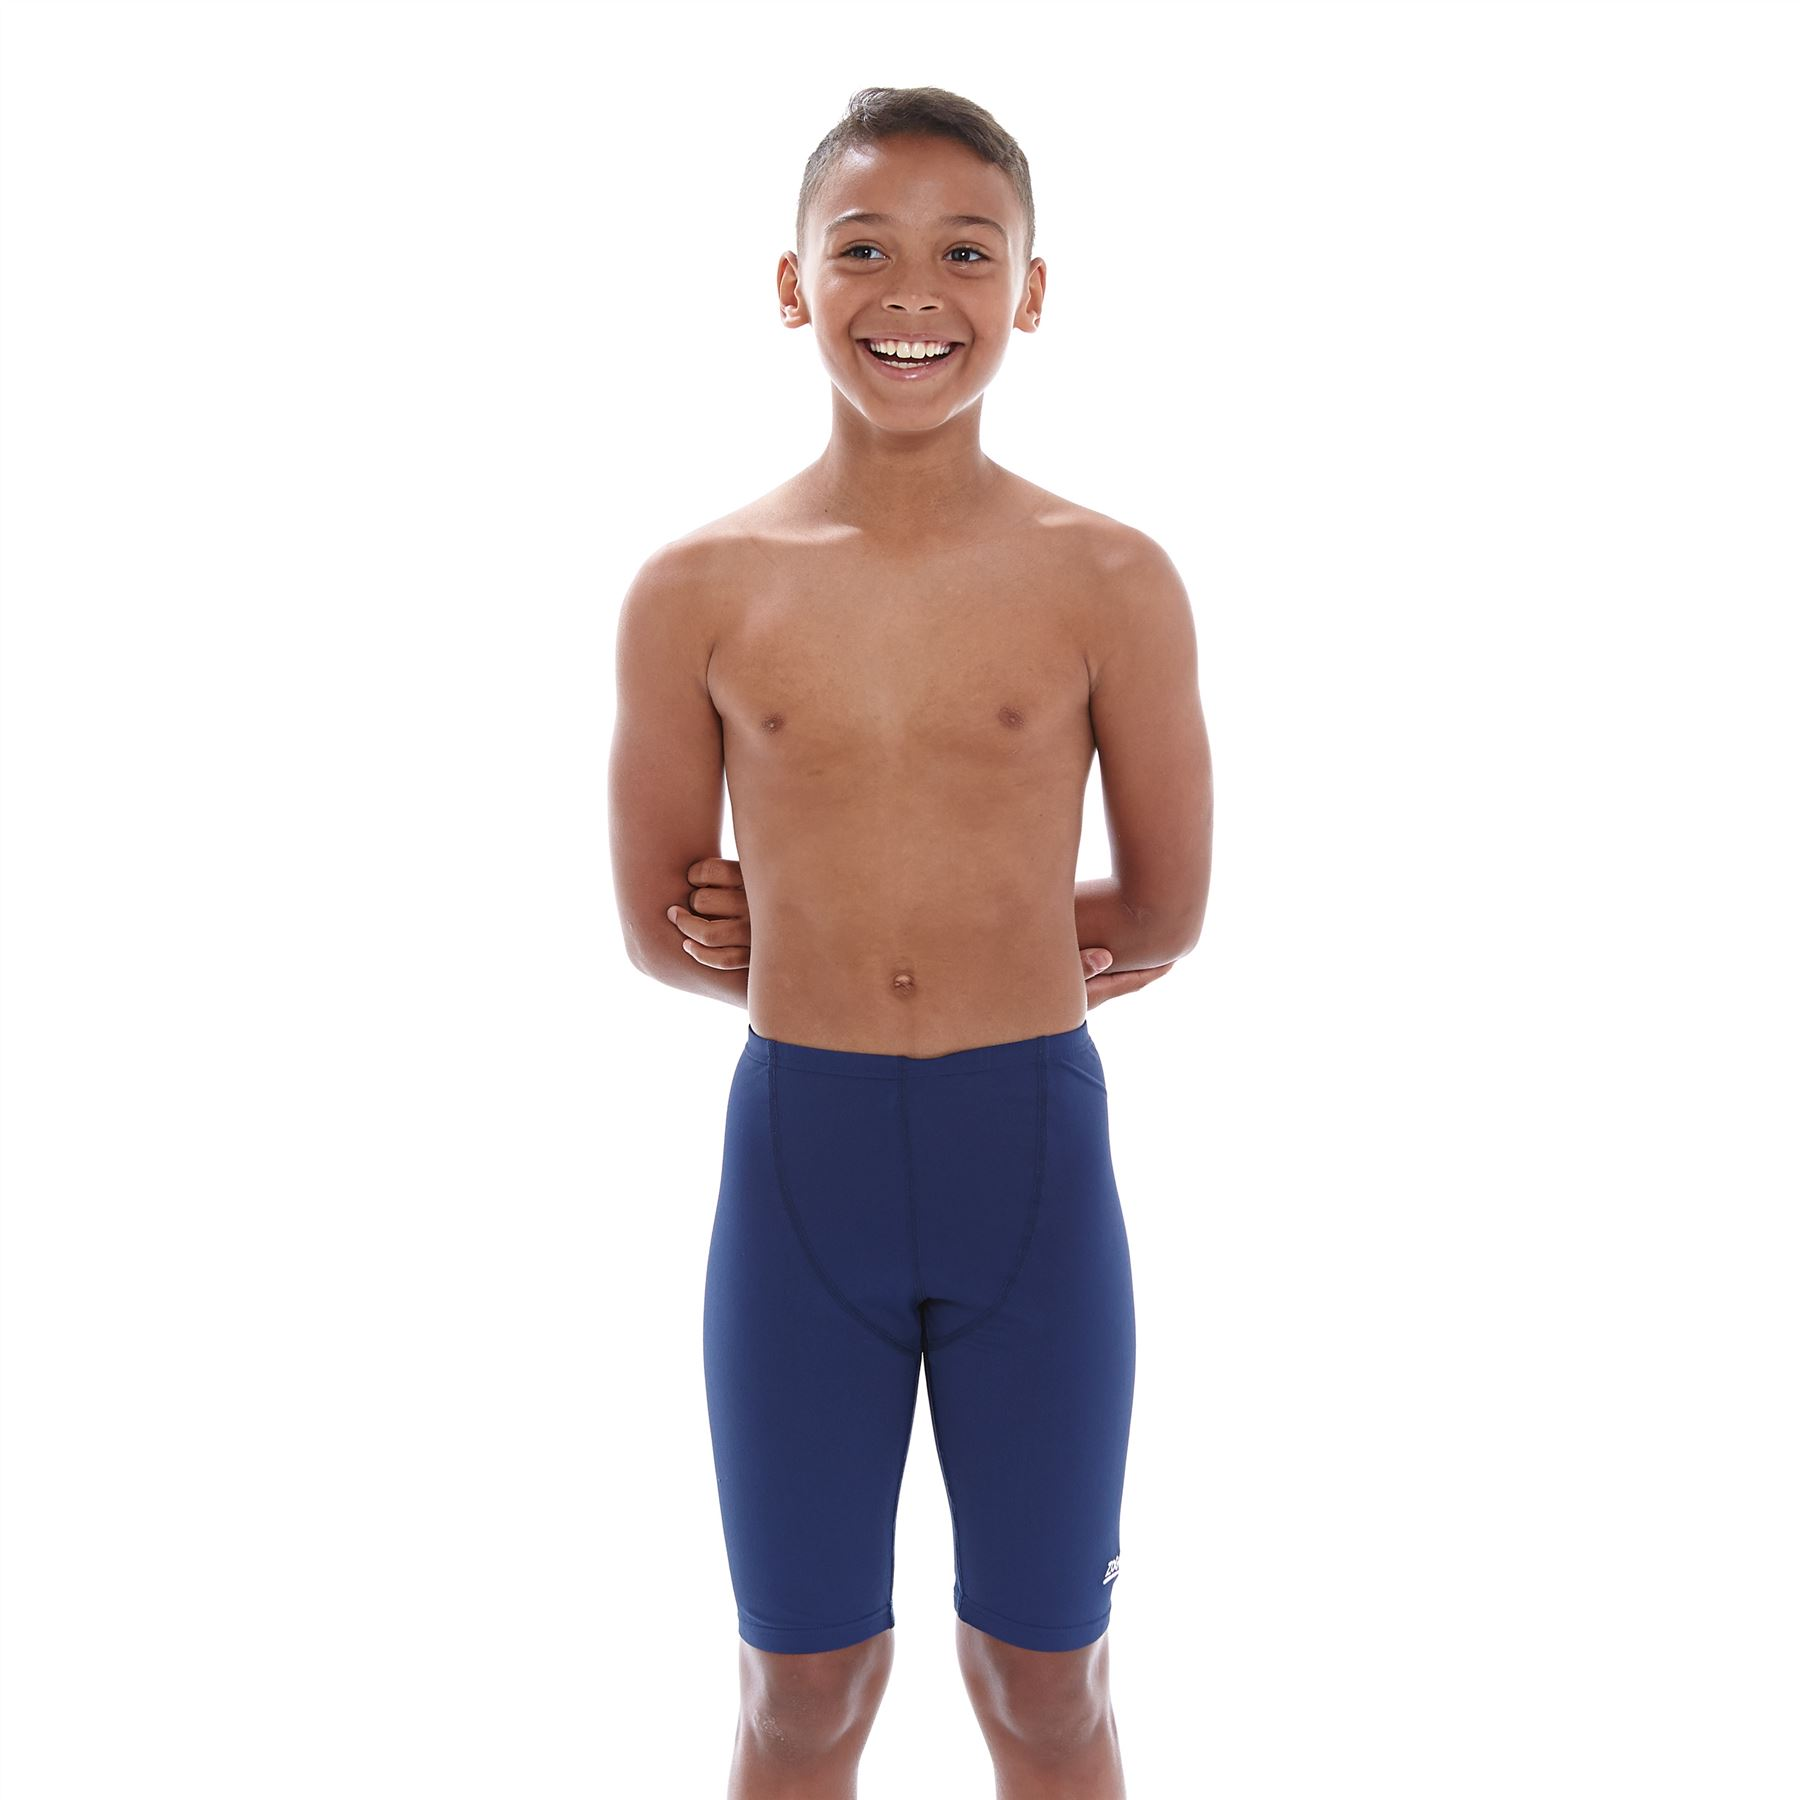 Whether he needs mix-and-match separates, school uniforms, denim jeans or outerwear, it's all at Target. Get his T-shirts, shirts, hoodies, pants and shorts in a variety of styles and colors. And for boys who never stop moving, check out our selection of boys' activewear for athletic tees, running shorts and more.